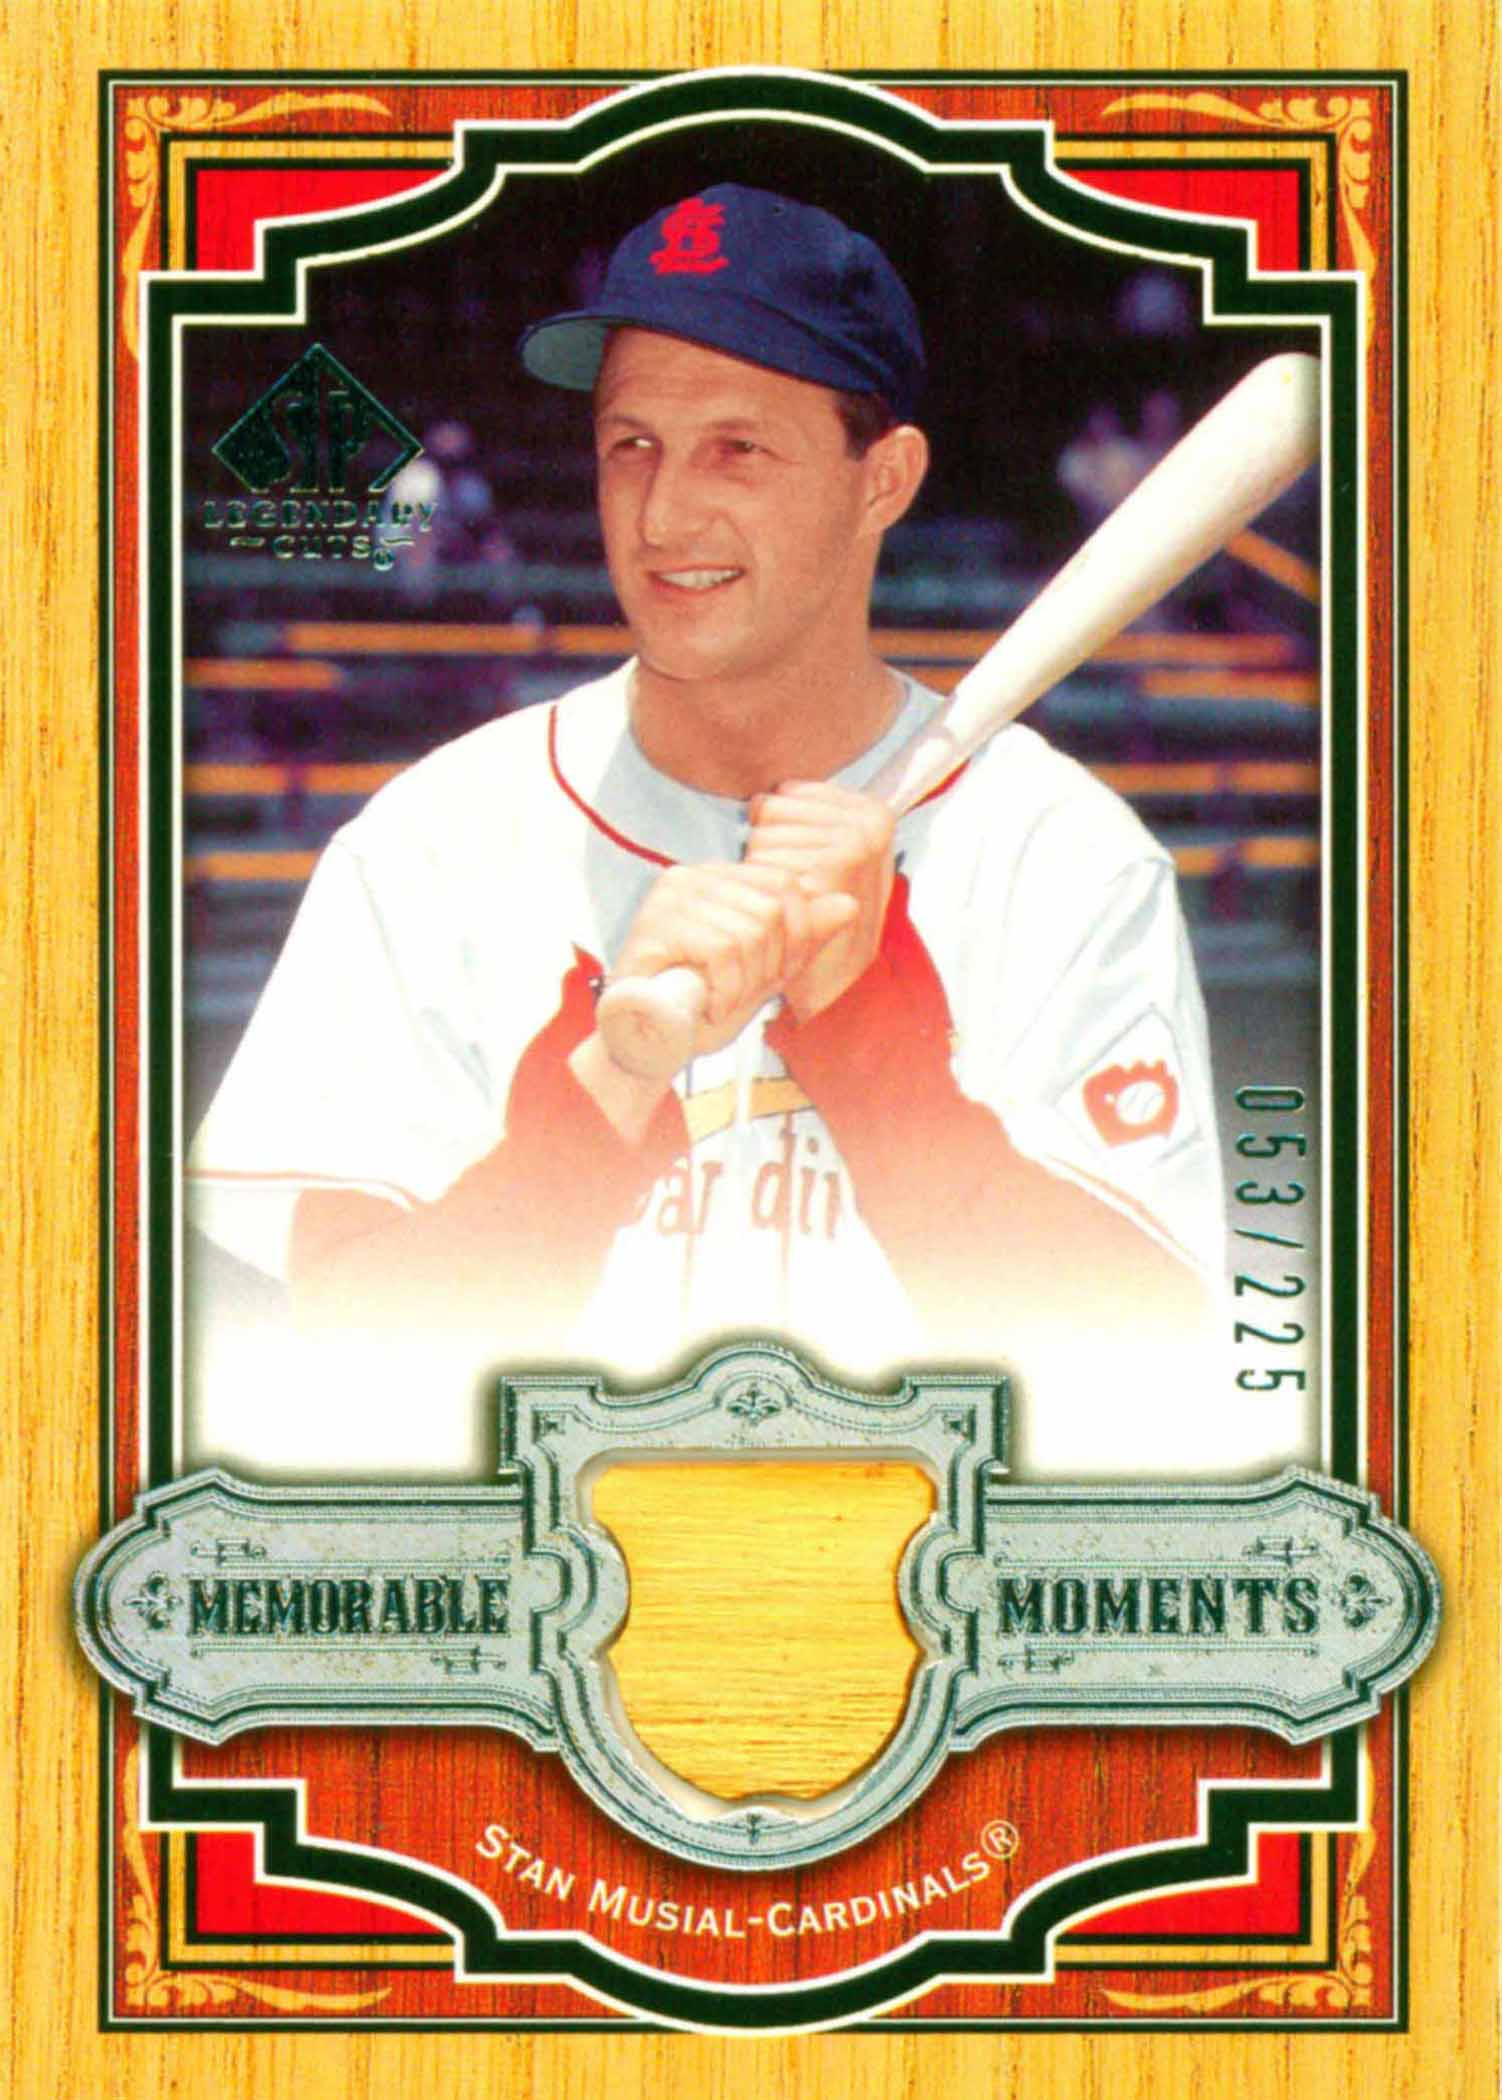 2006 SP Legendary Cuts Memorable Moments Materials Bat